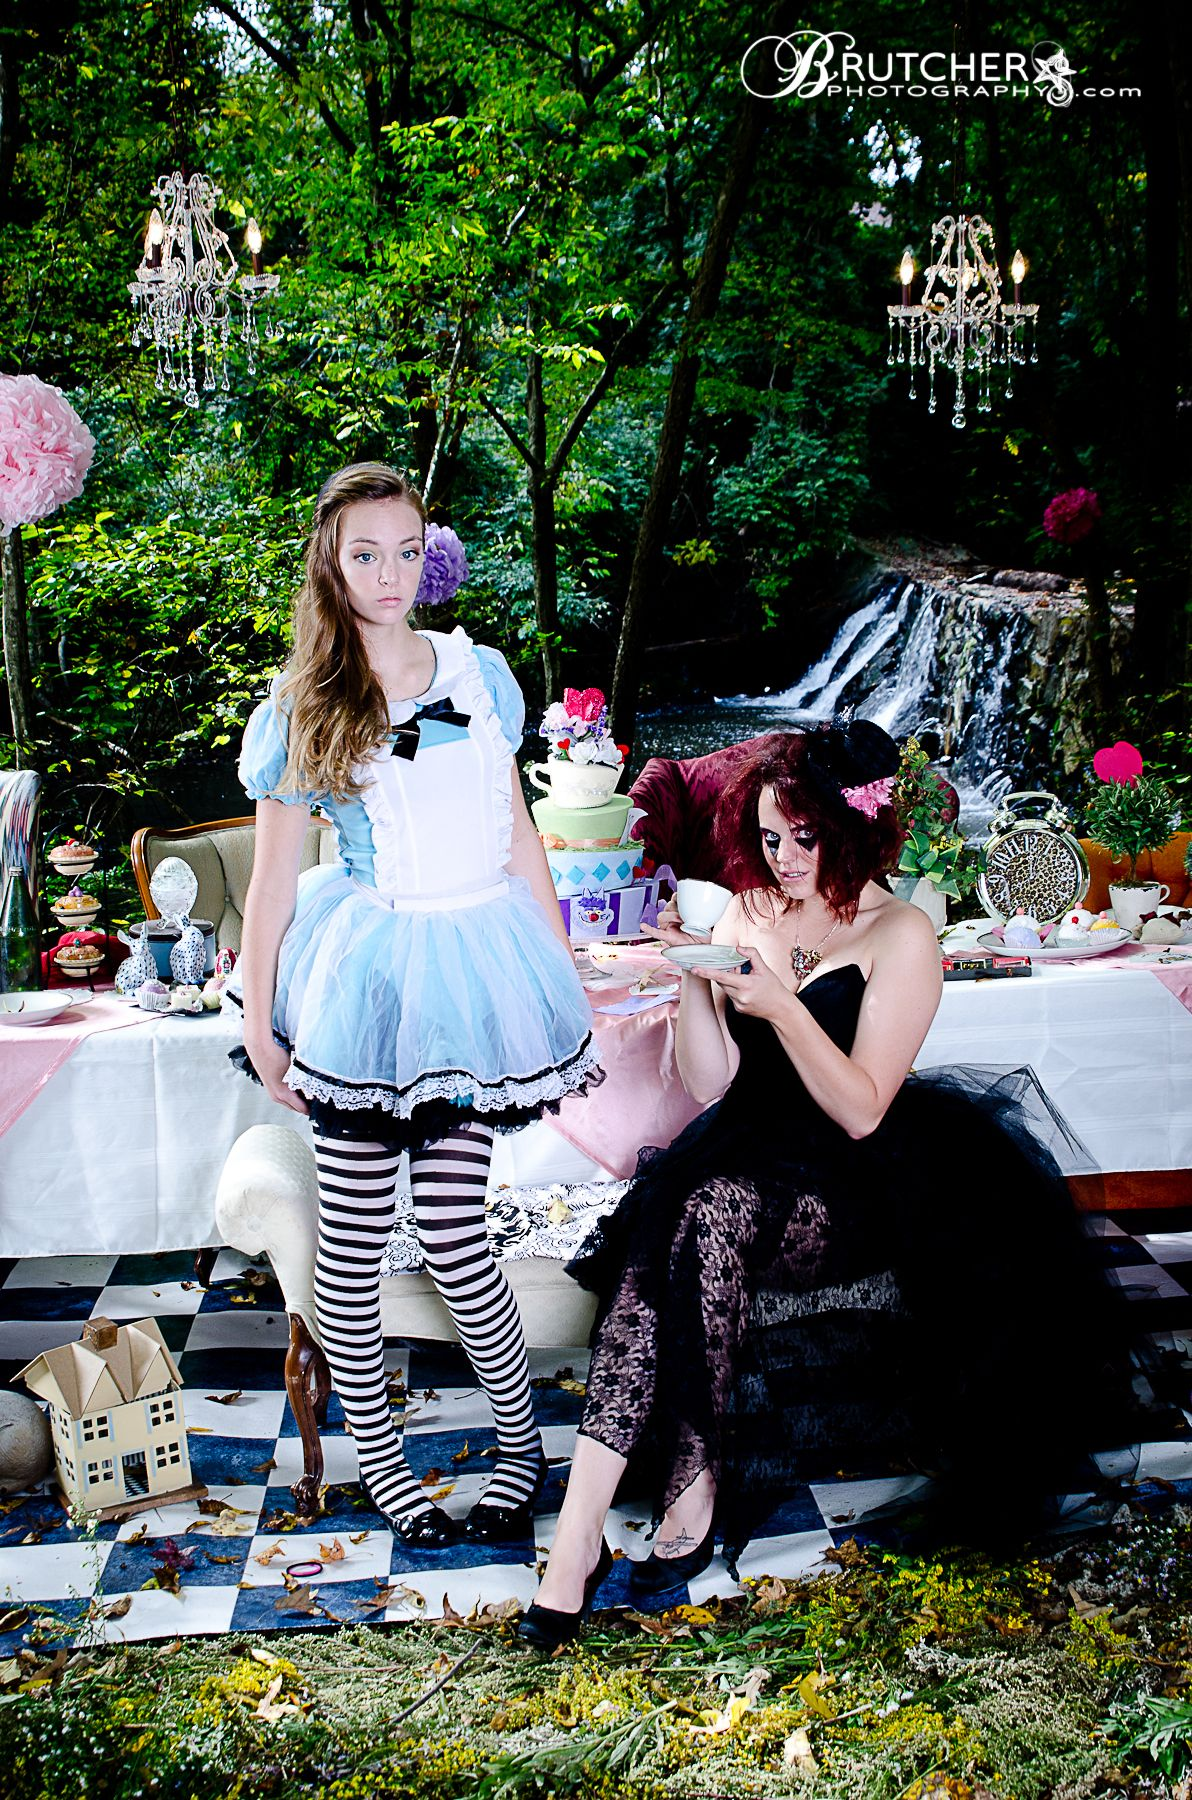 Alice in Wonderland photoshoot by Brutcher Photography